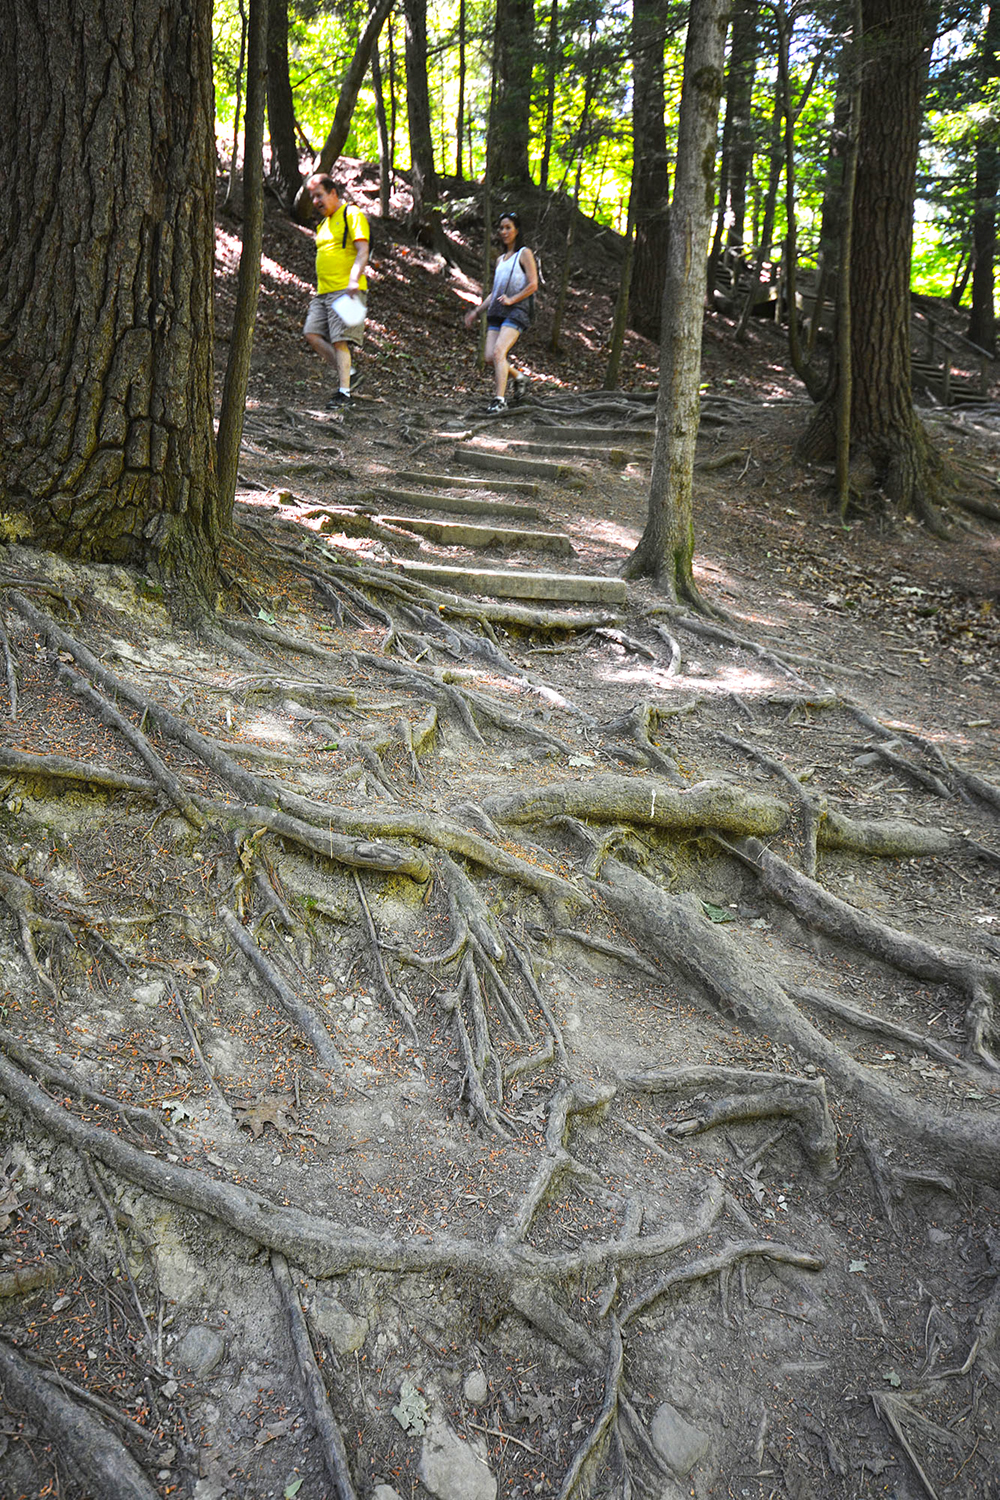 This spot near the footbridge demonstrates how trail use has led to exposed roots that require careful footing from visitors. © Dave Kraus